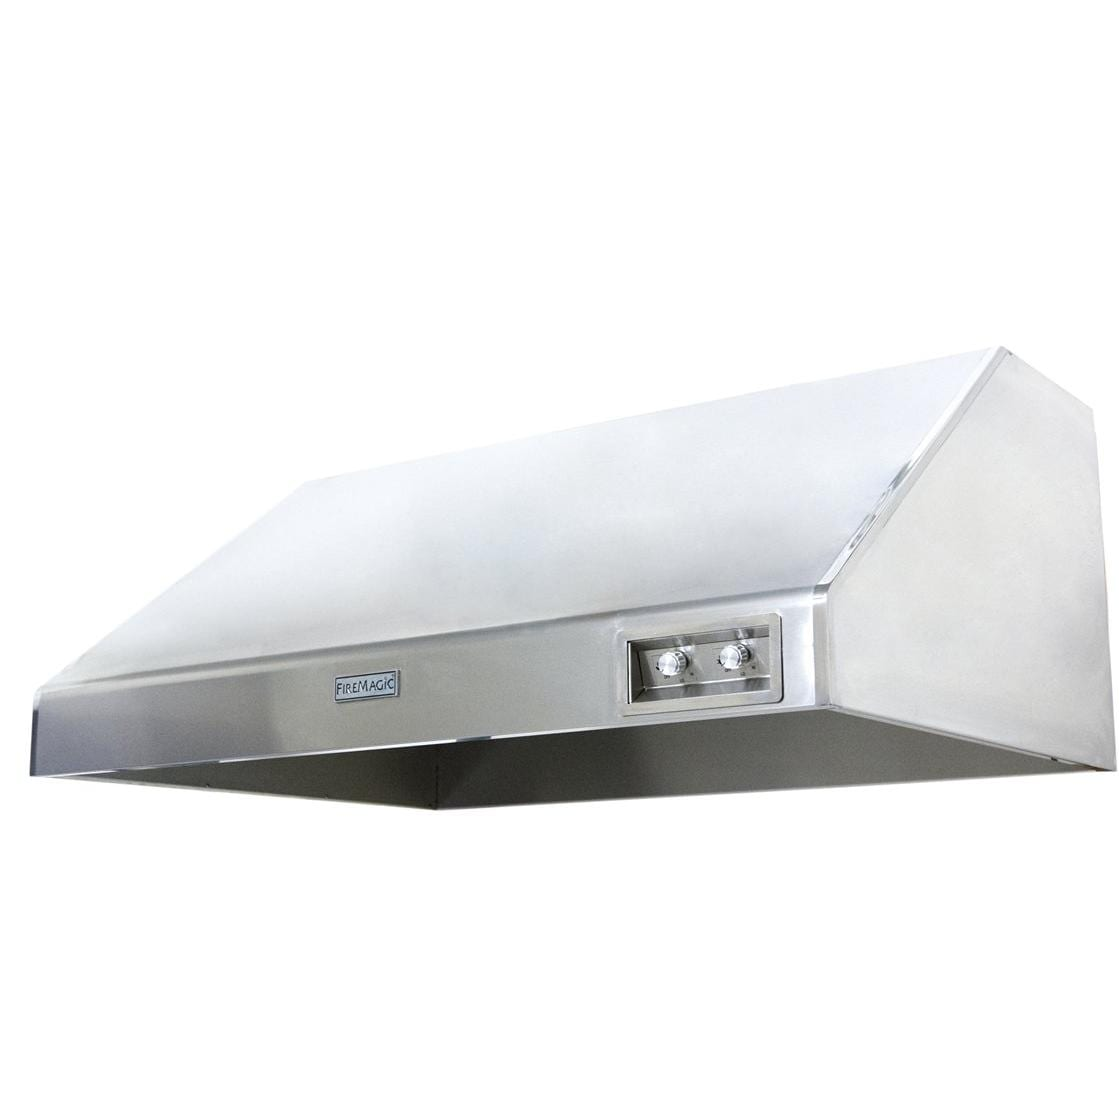 Fire Magic 42-Inch Outdoor Vent Hood Stainless Steel